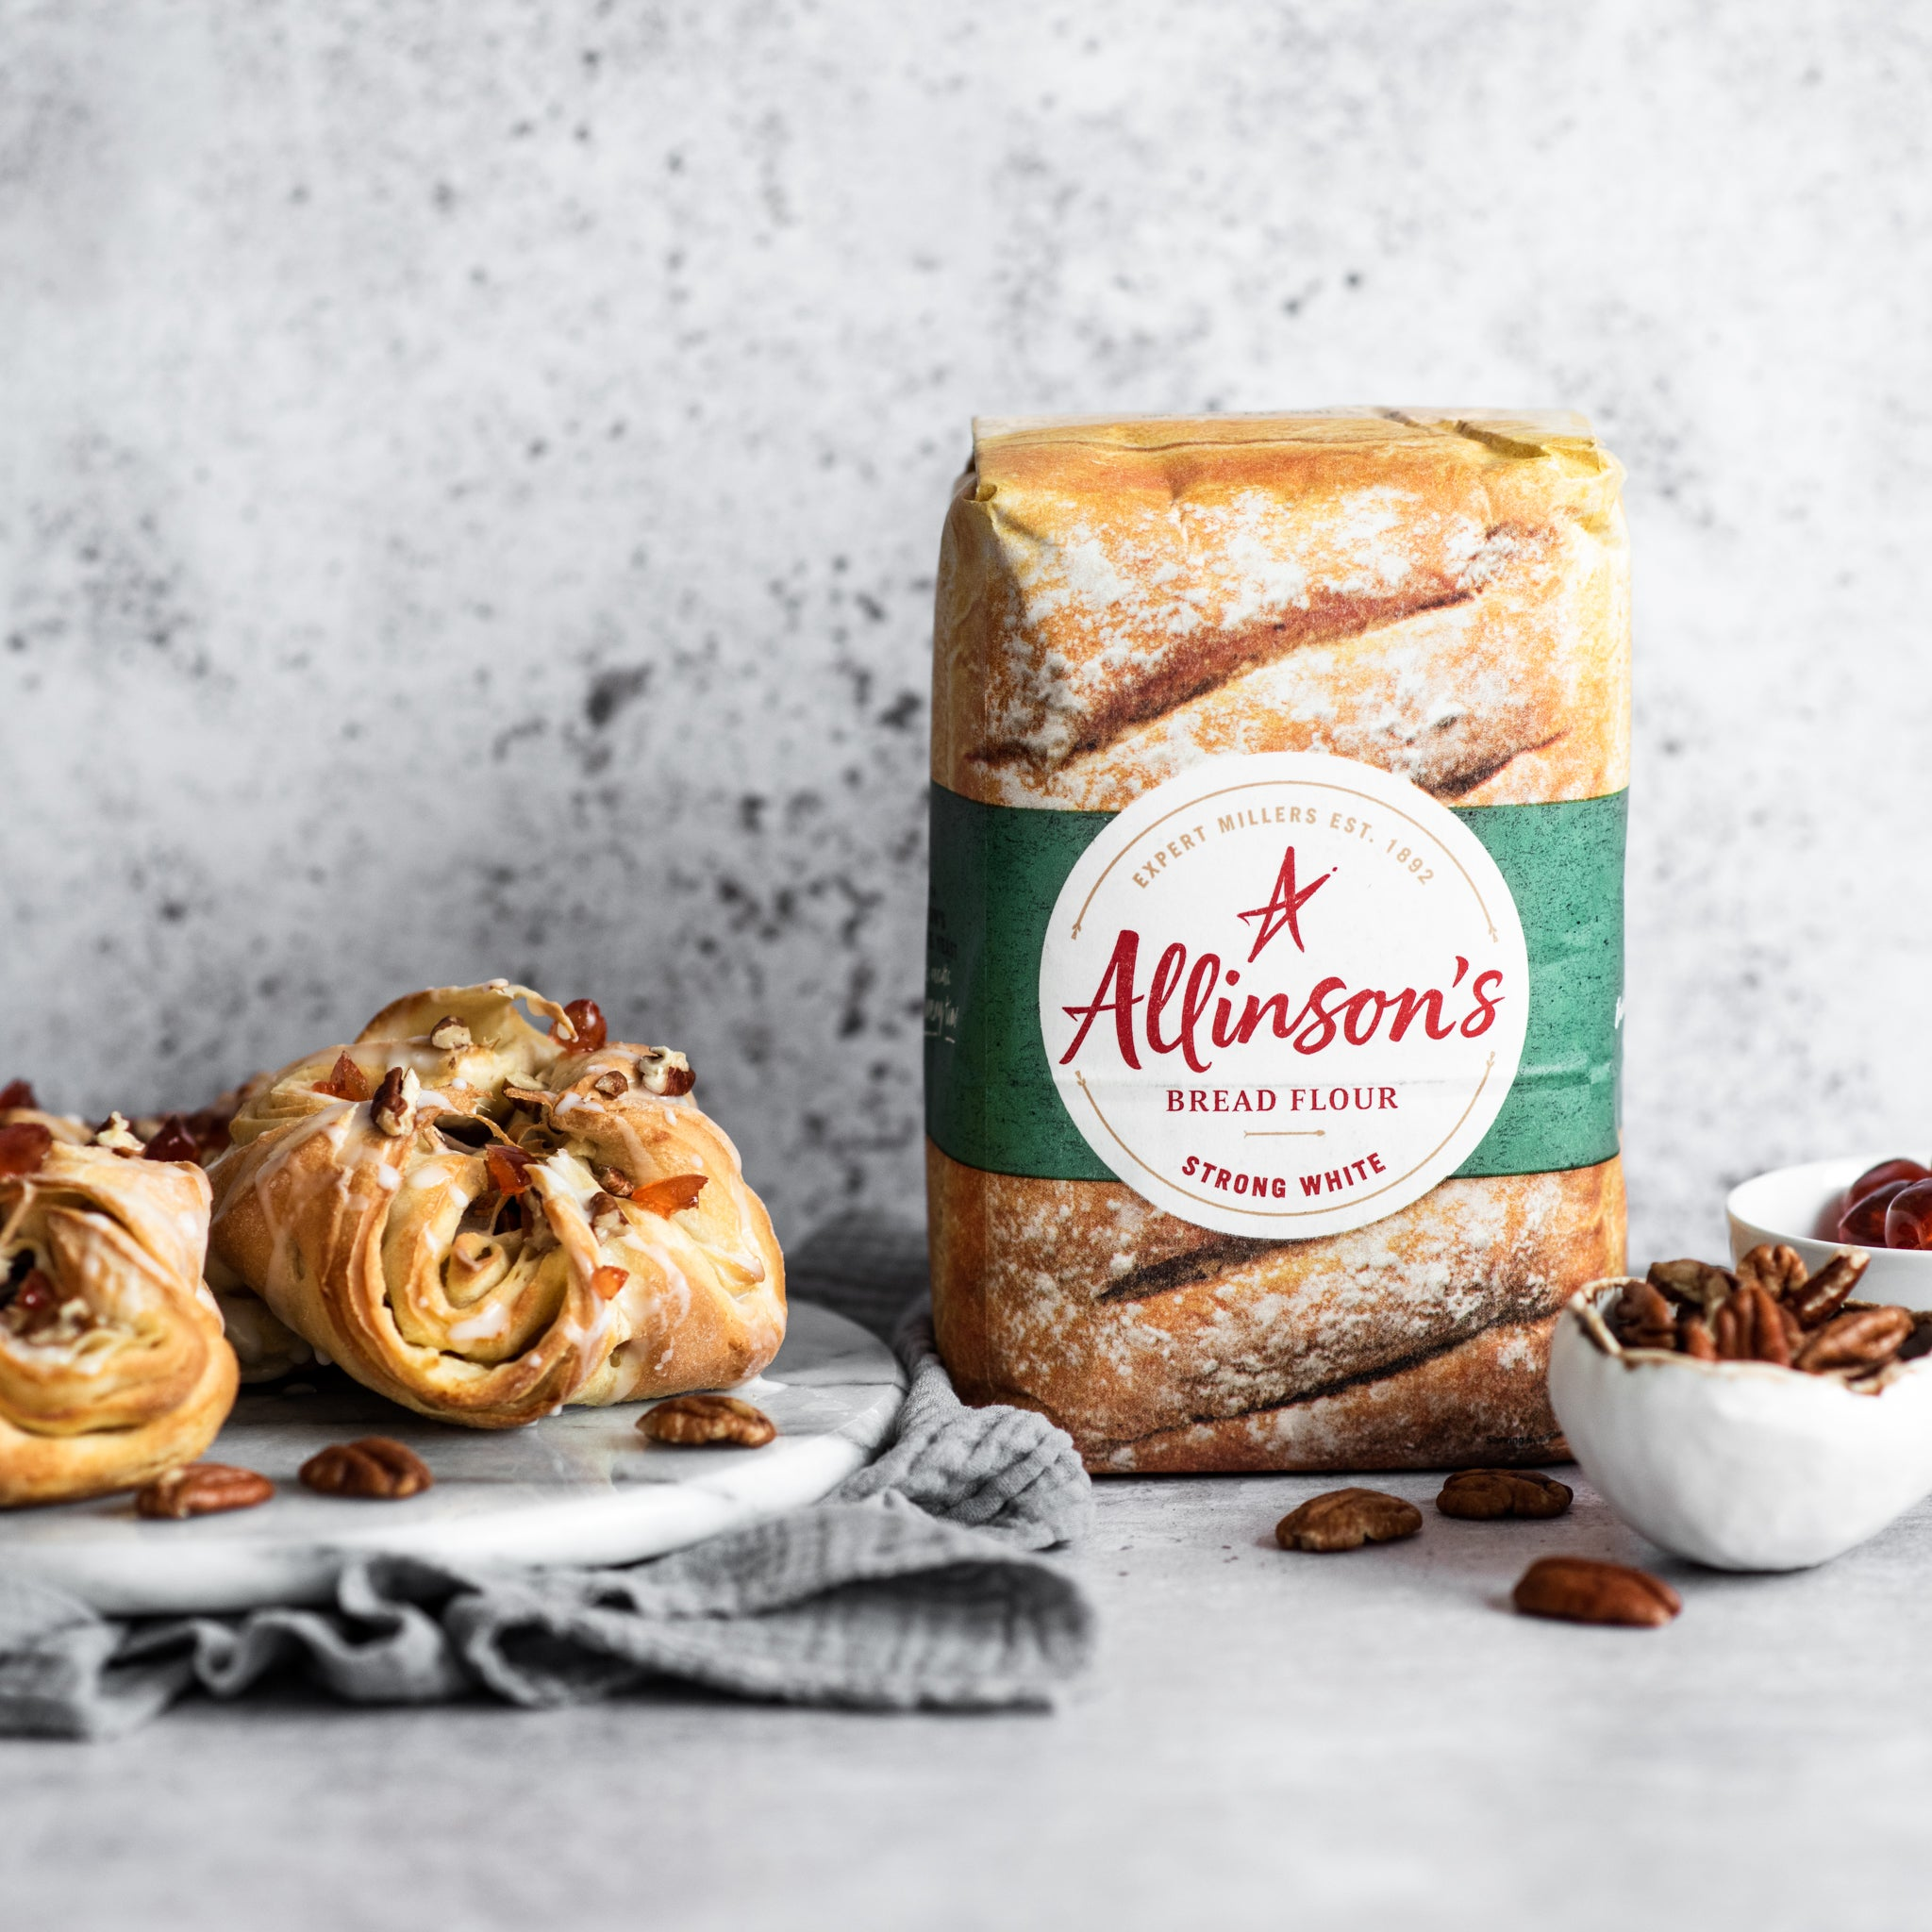 Two danish pastries and flour pack